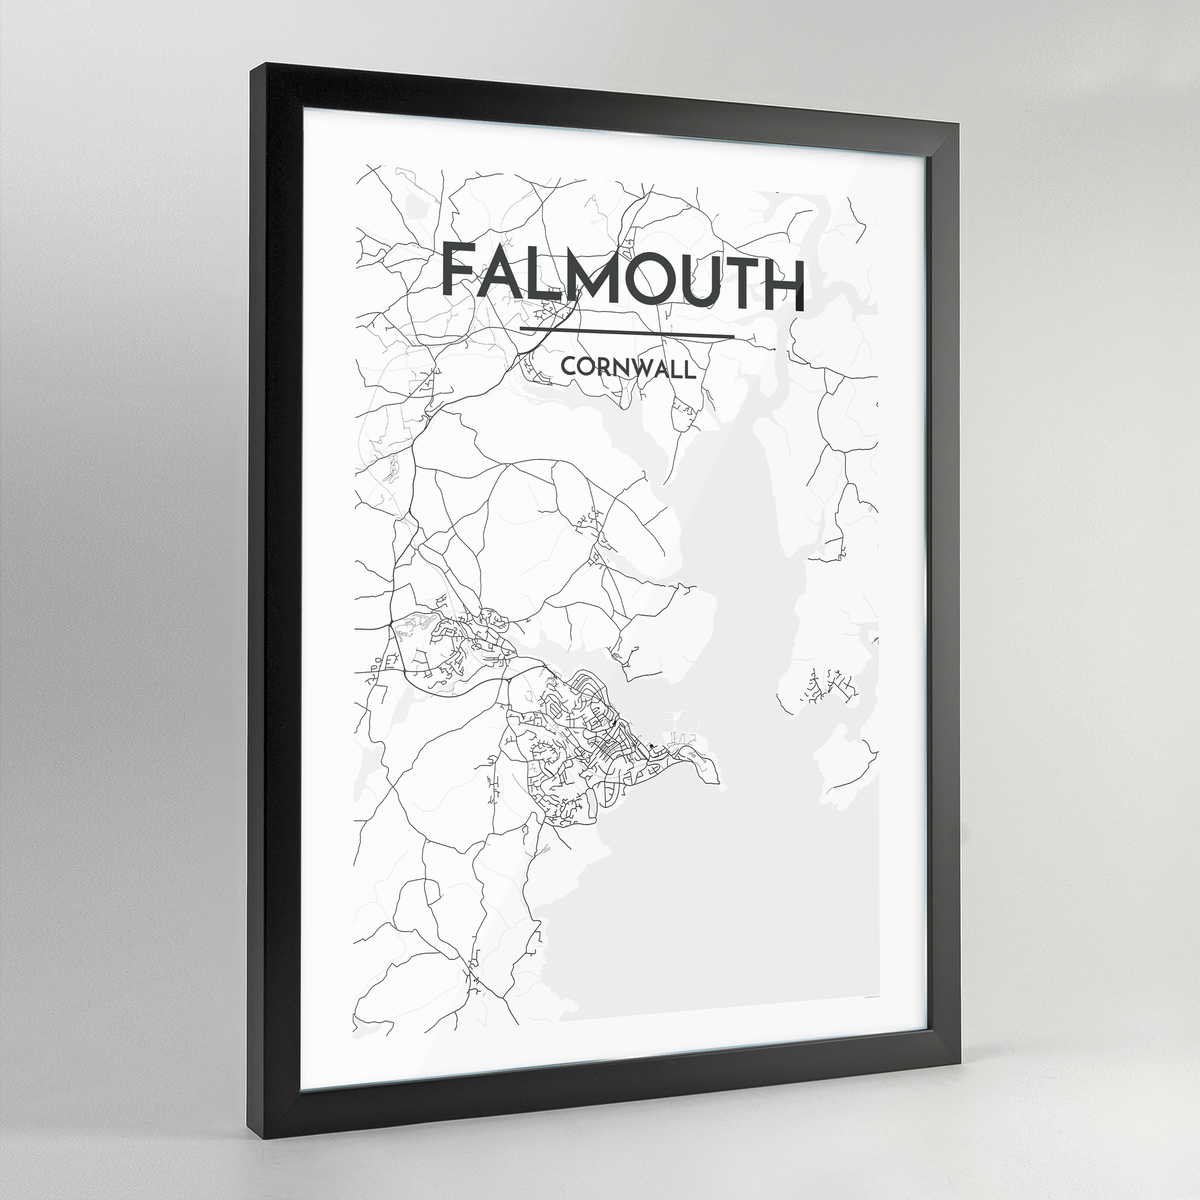 Falmouth Map Art Print - Framed